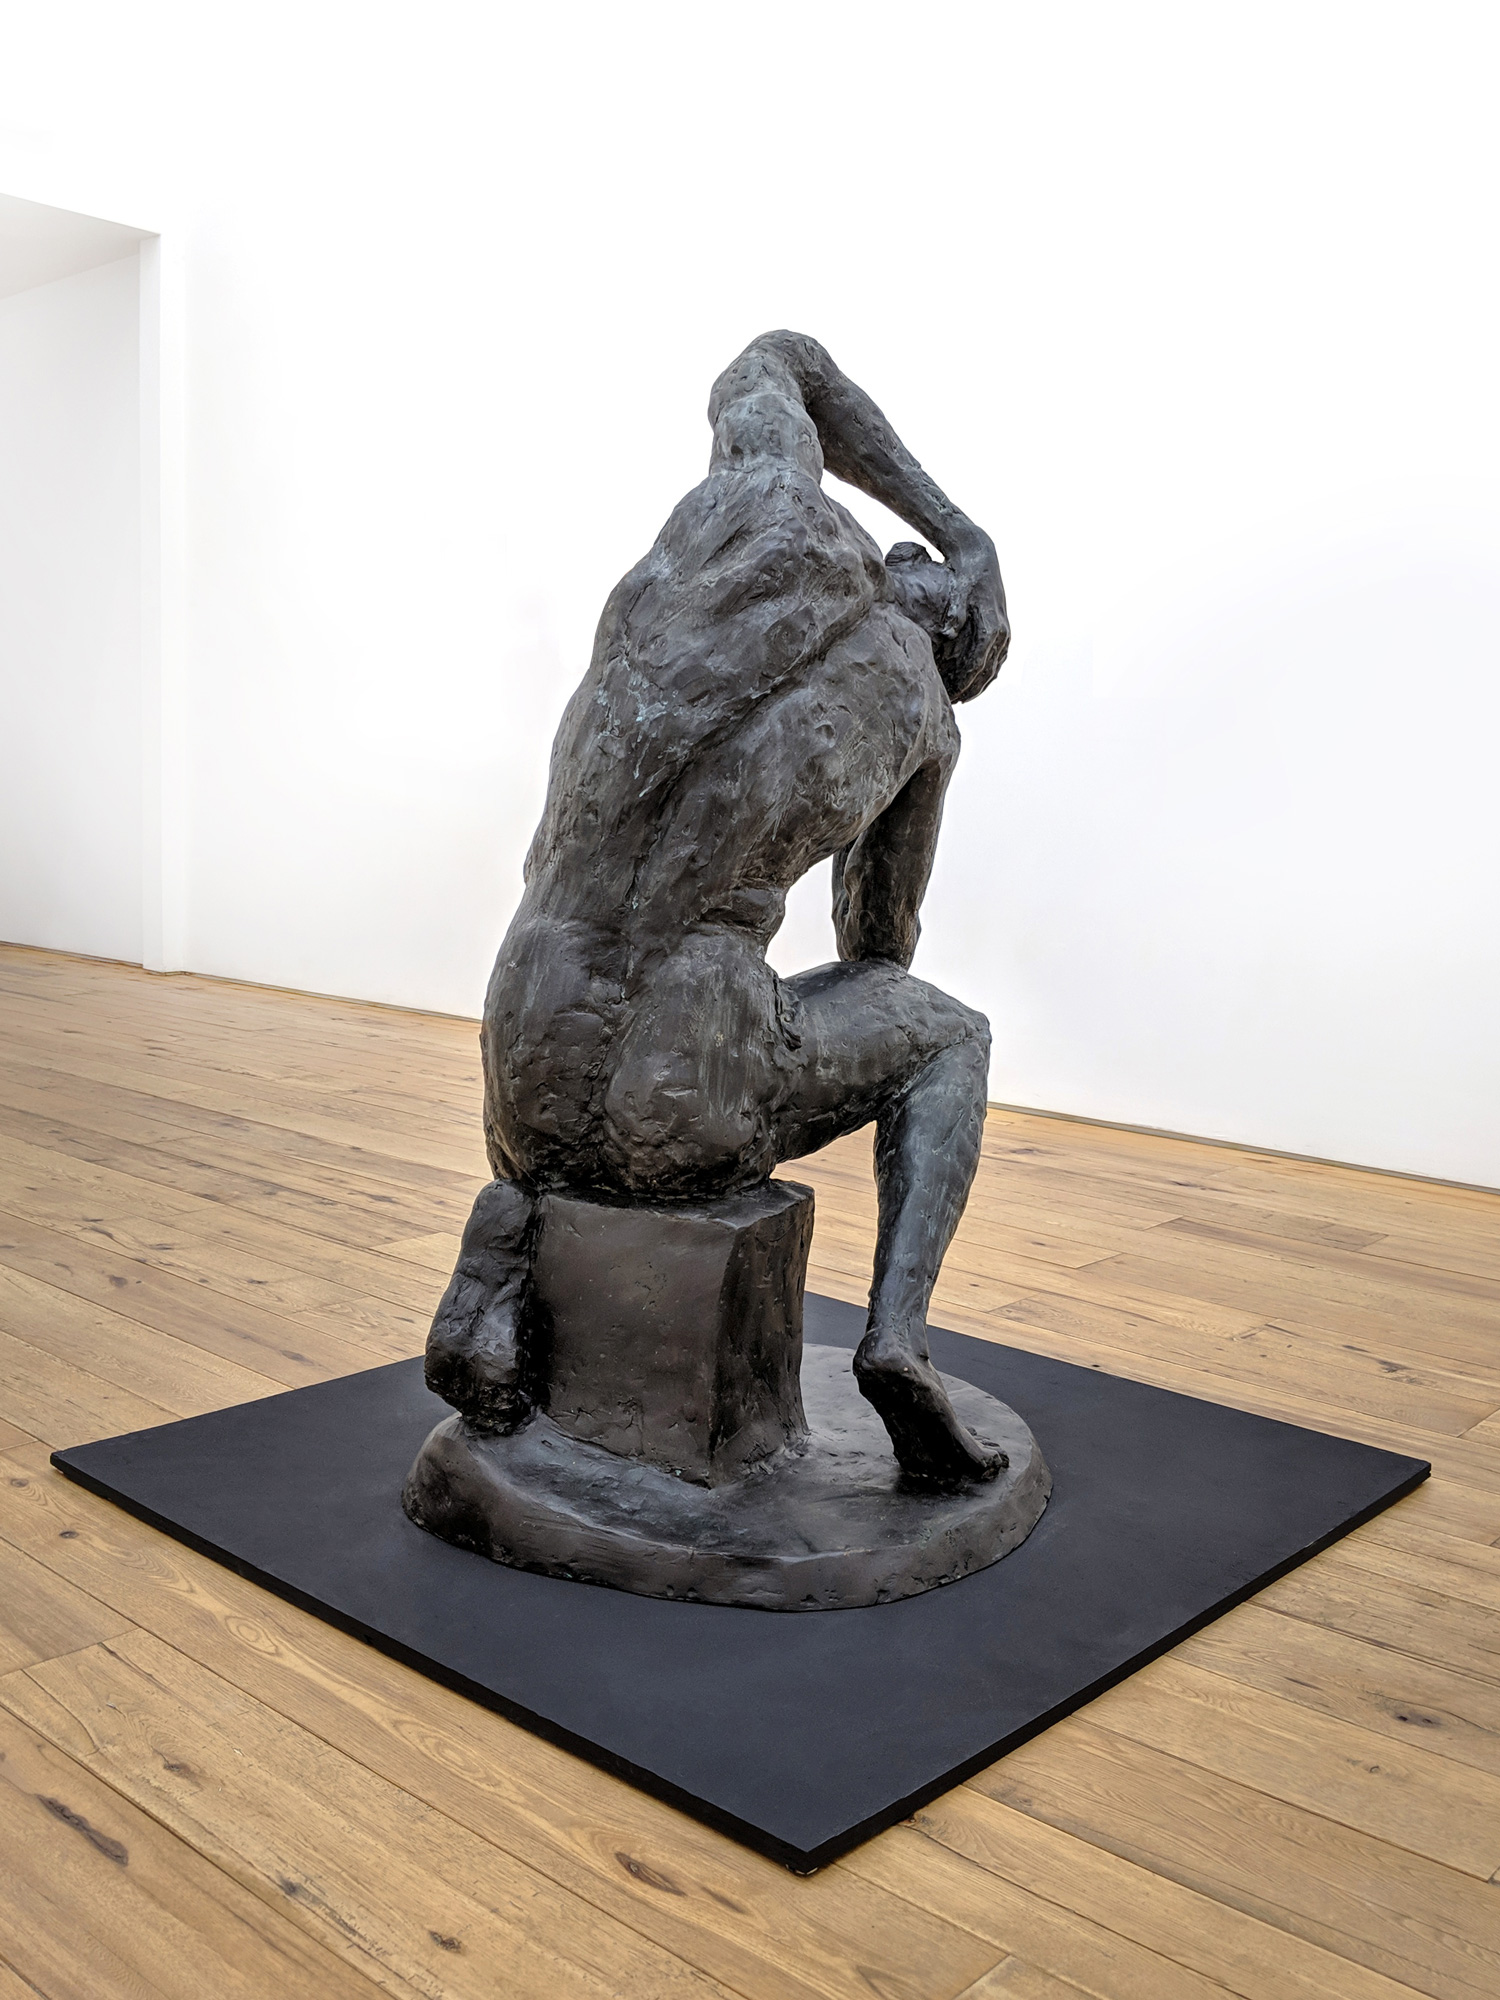 Sandro Chia 2017